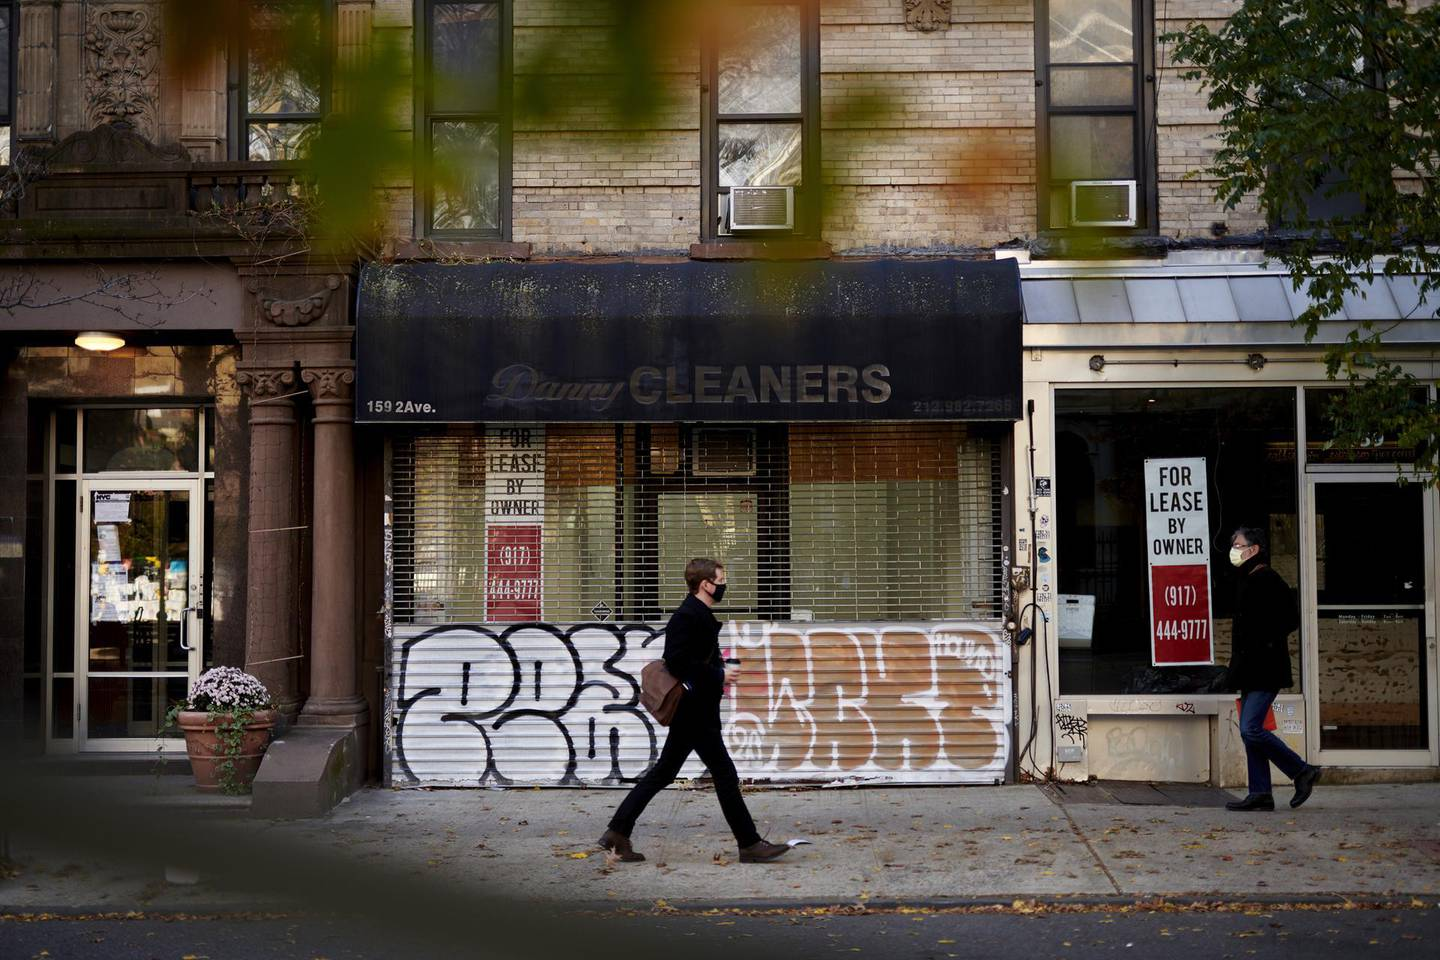 Pedestrians wearing protective masks pass in front of a permanently closed dry cleaners store and an empty storefront for lease in New York, U.S., on Thursday, Nov. 19, 2020. One in six dry cleaners have closed or gone bankrupt in the U.S. already, and many won't survive without more stimulus, according to the National Cleaners Association. Photographer: Gabby Jones/Bloomberg